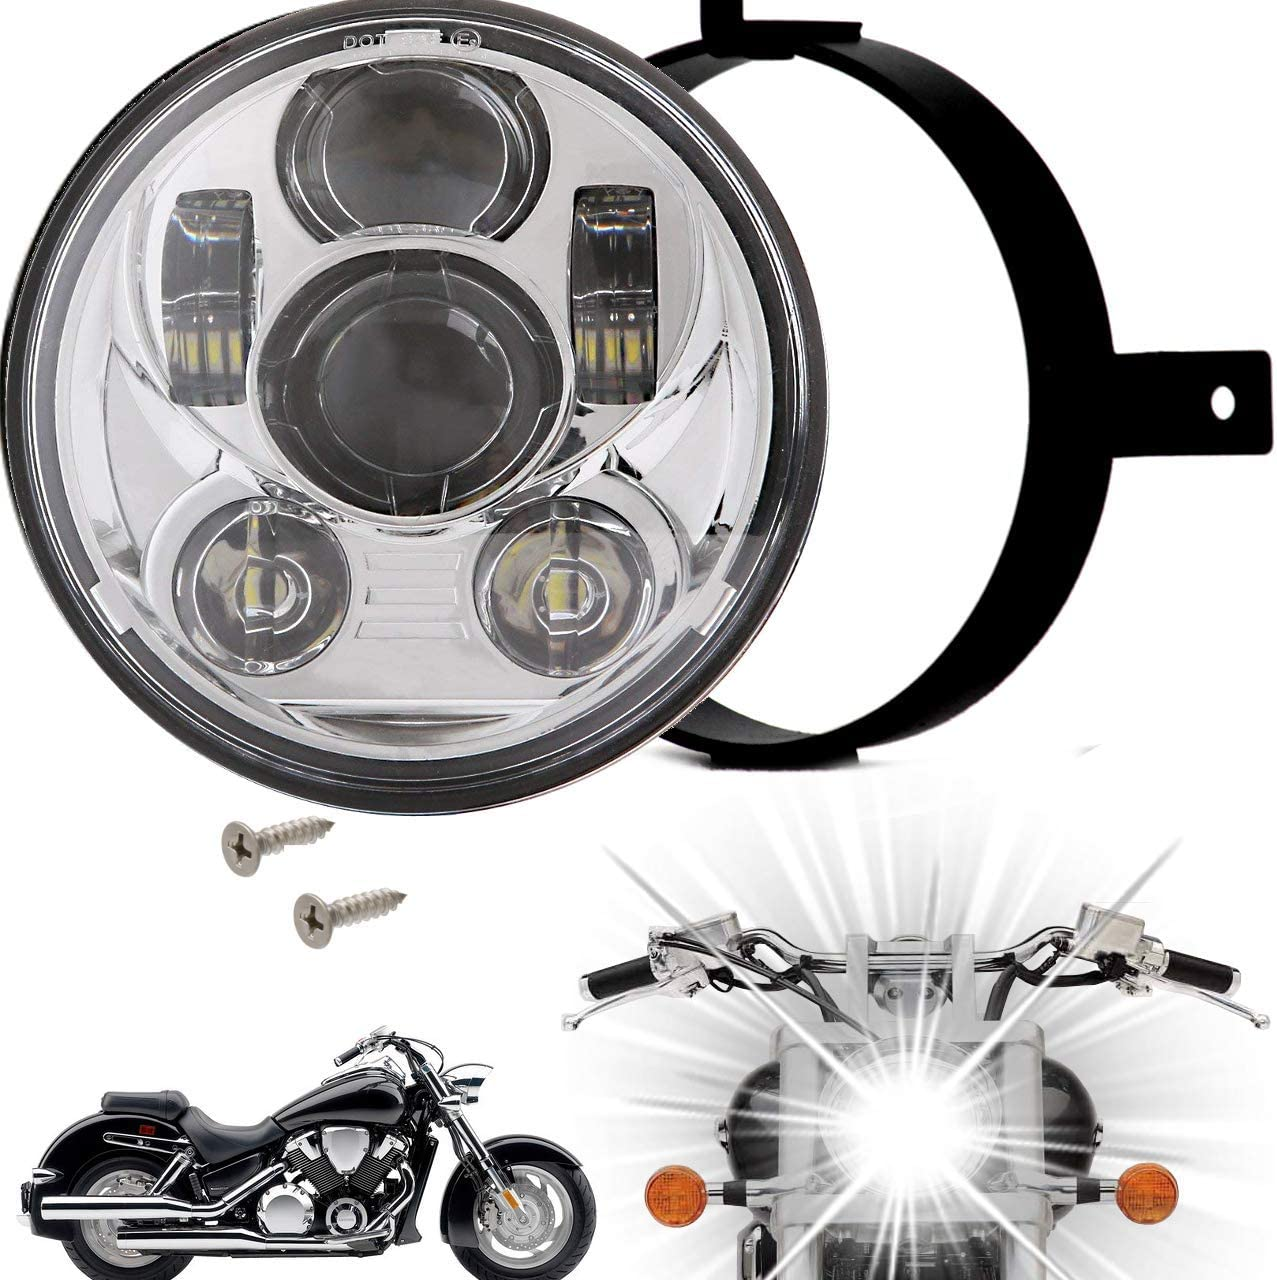 Eagle Lights 5.75 inch LED Motorcycle Headlight Kit with Integrated Turn Signals for Honda VTX with Bracket and Hardware Plug and Play fits 2002-2008 VTX 1800 VTX 1300